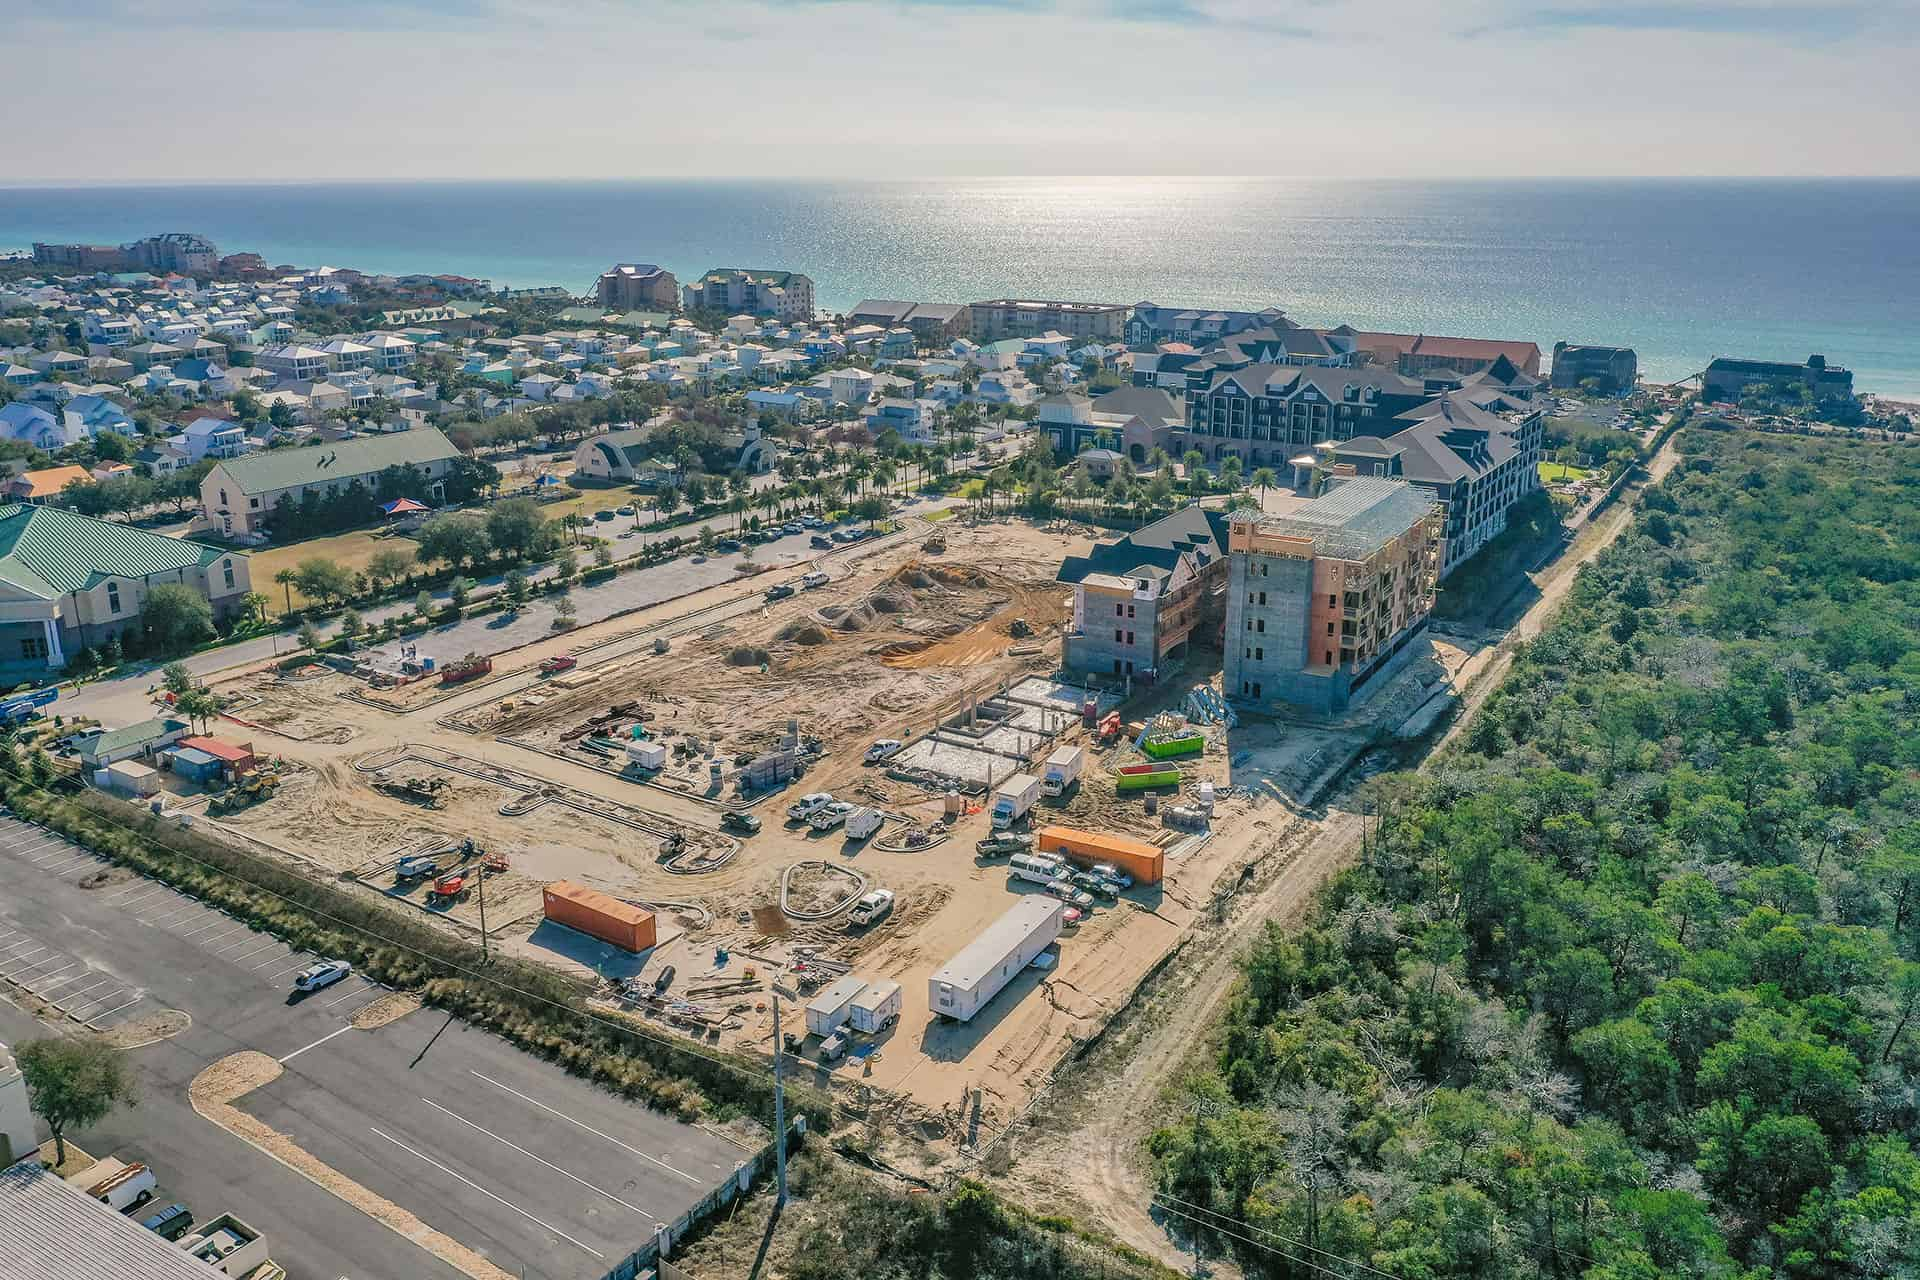 Parkside_at_Henderson_Beach_Resort_January_2021 drone photo looking southeast